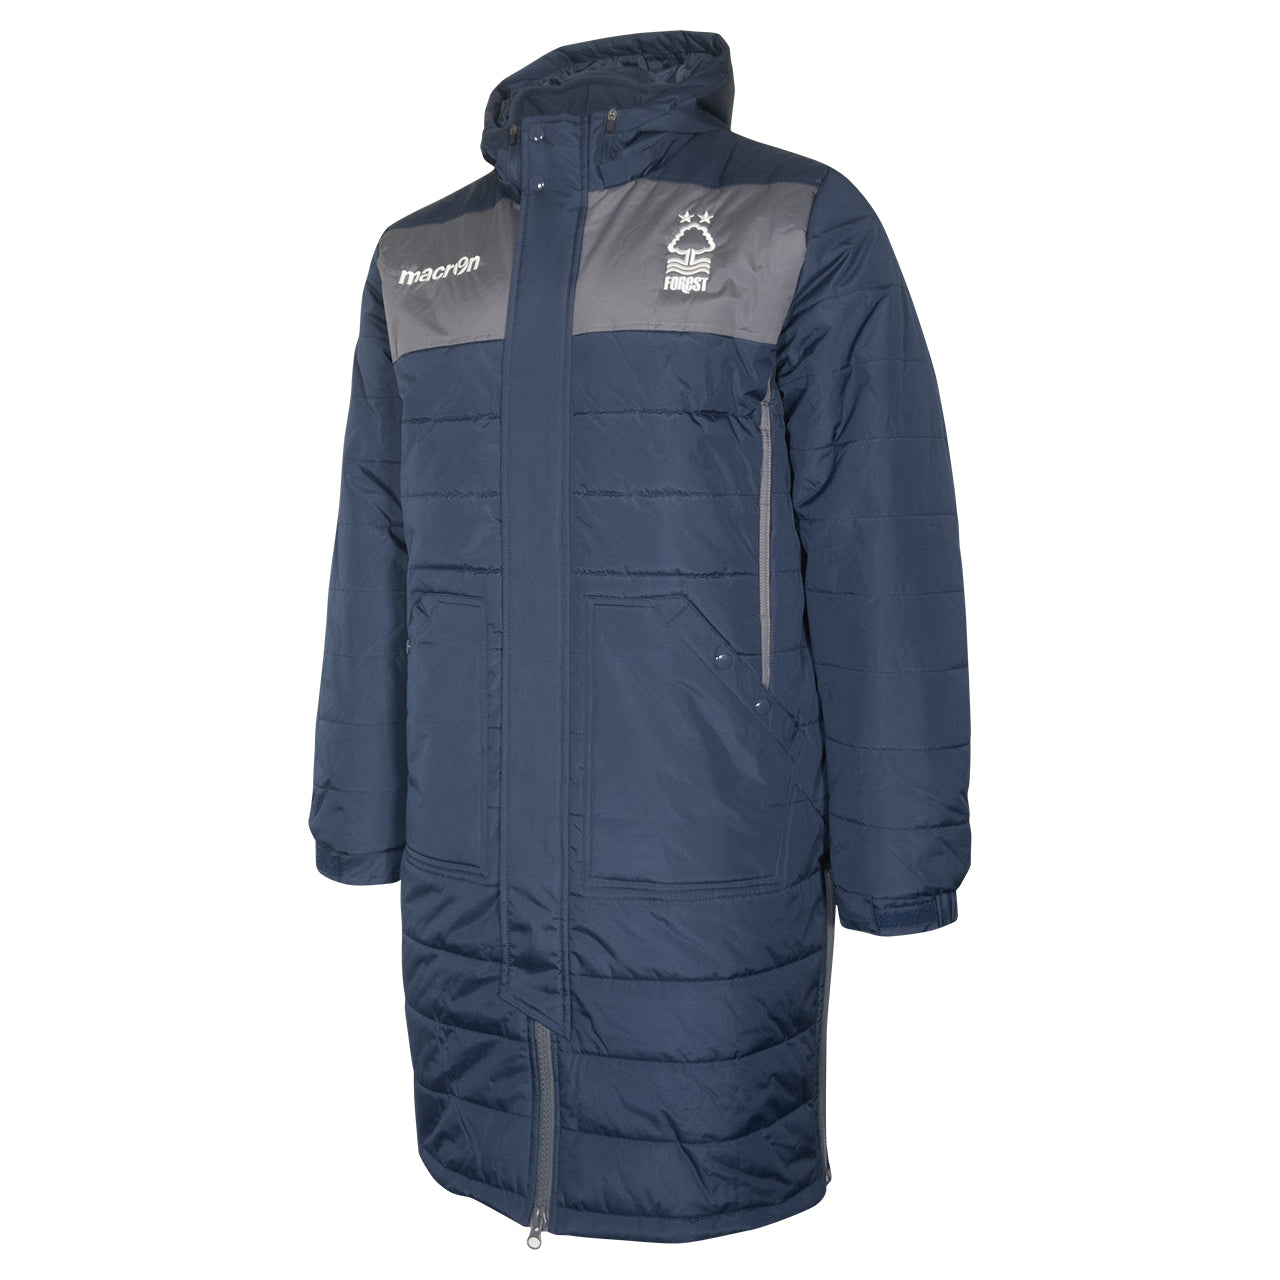 NFFC Mens Bench Jacket 2020/21